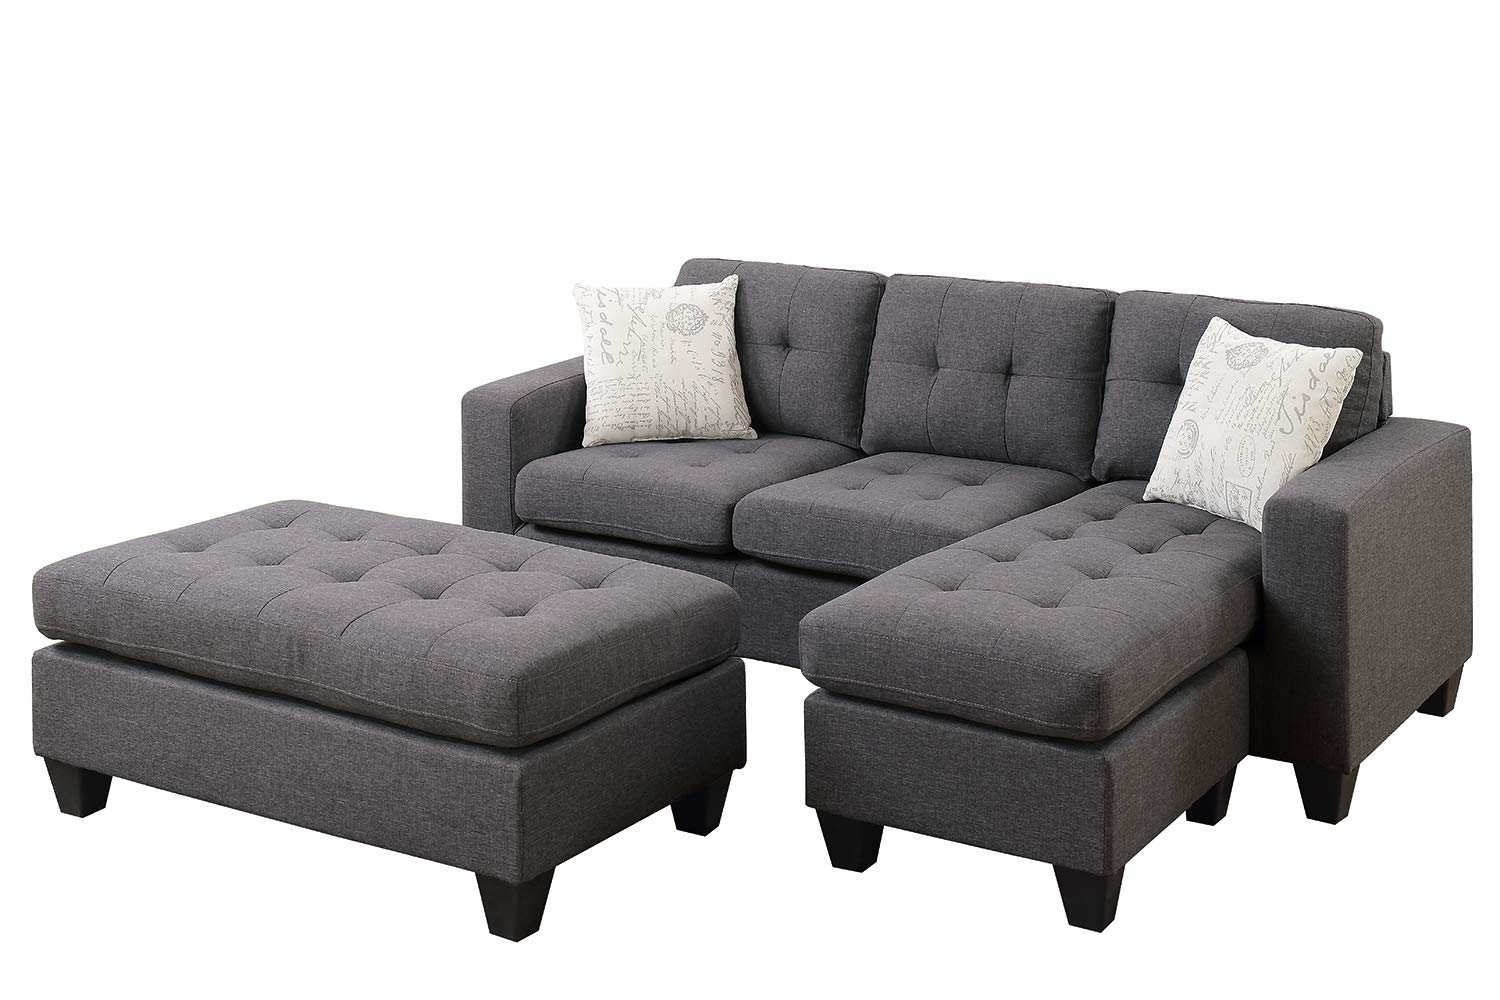 Poundex All in One Sectional with Ottoman and 2 Pillows in Gray, Blue Grey by Poundex